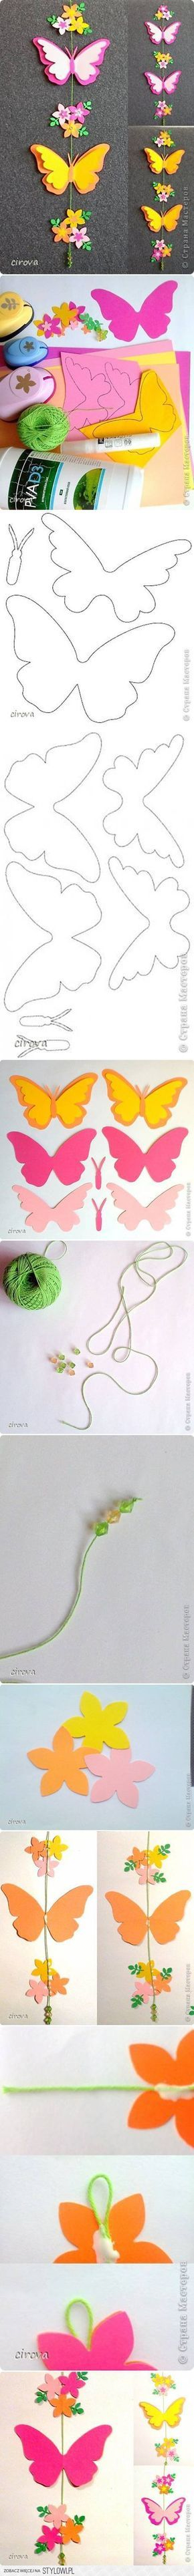 Diy butterfly mobile butterfly chandelier mobile - Diy Paper Butterfly Mobile Diy Projects Usefuldiy Com Na Stylowi Pl